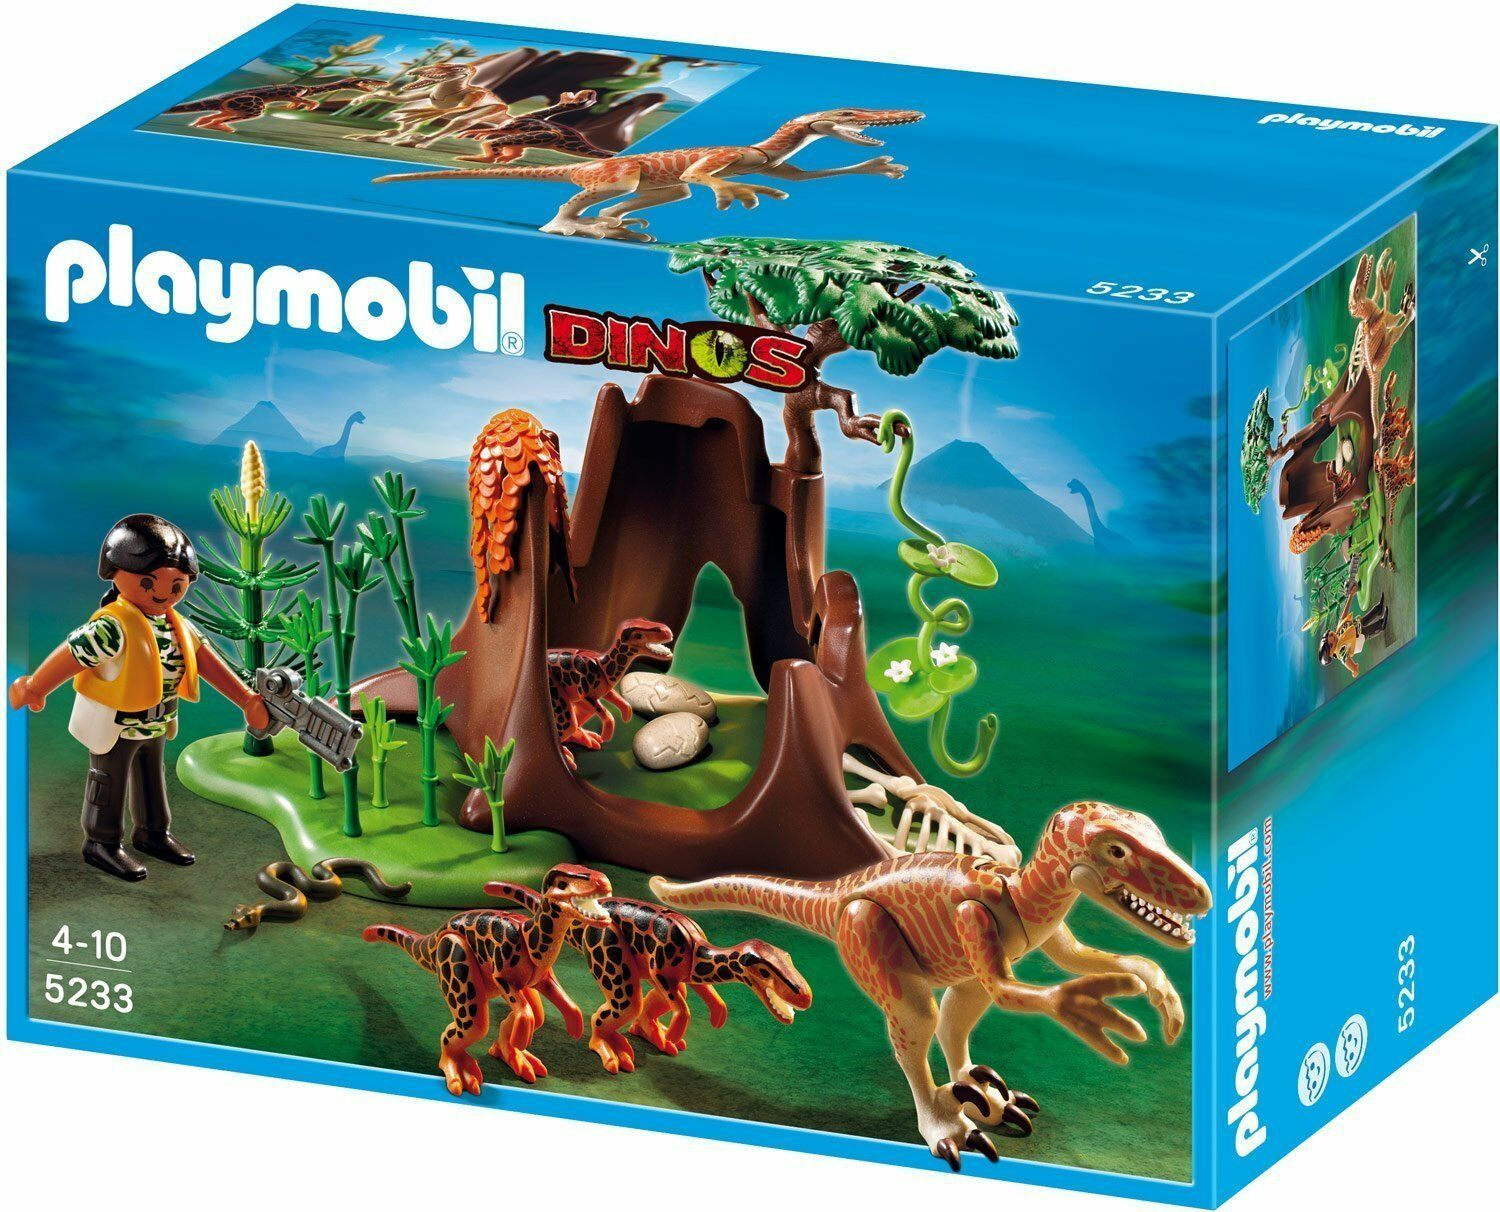 Playmobil 5233 Dinos - Deinonychus and Velociraptors - MISB   NEW   UNOPENED